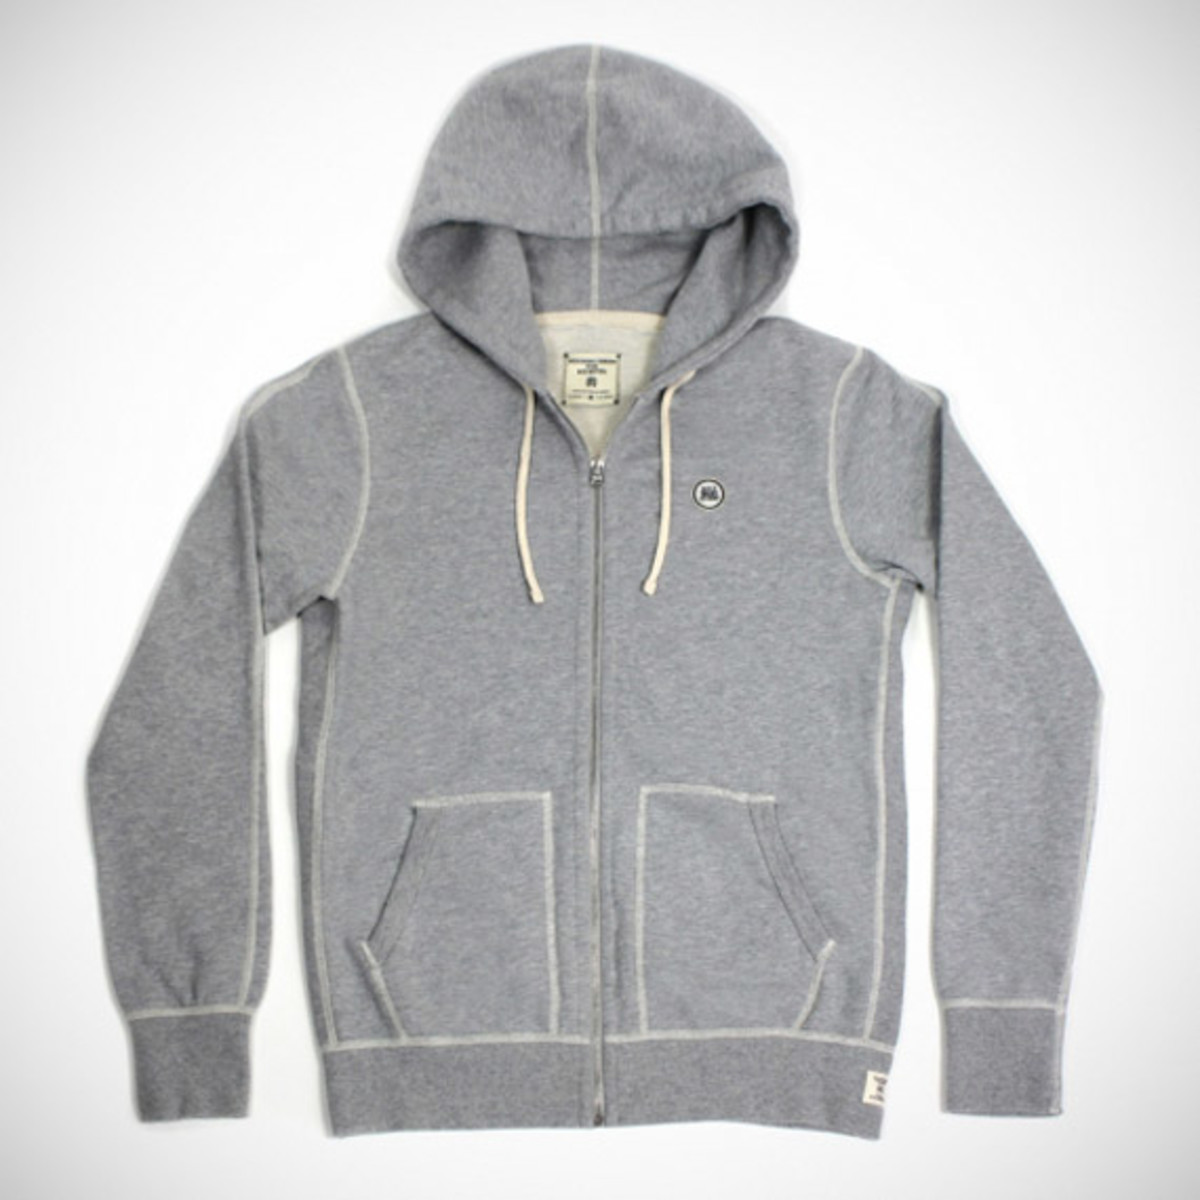 reigning-champ-for-ace-hotel-all-i-want-is-you-hoody-01